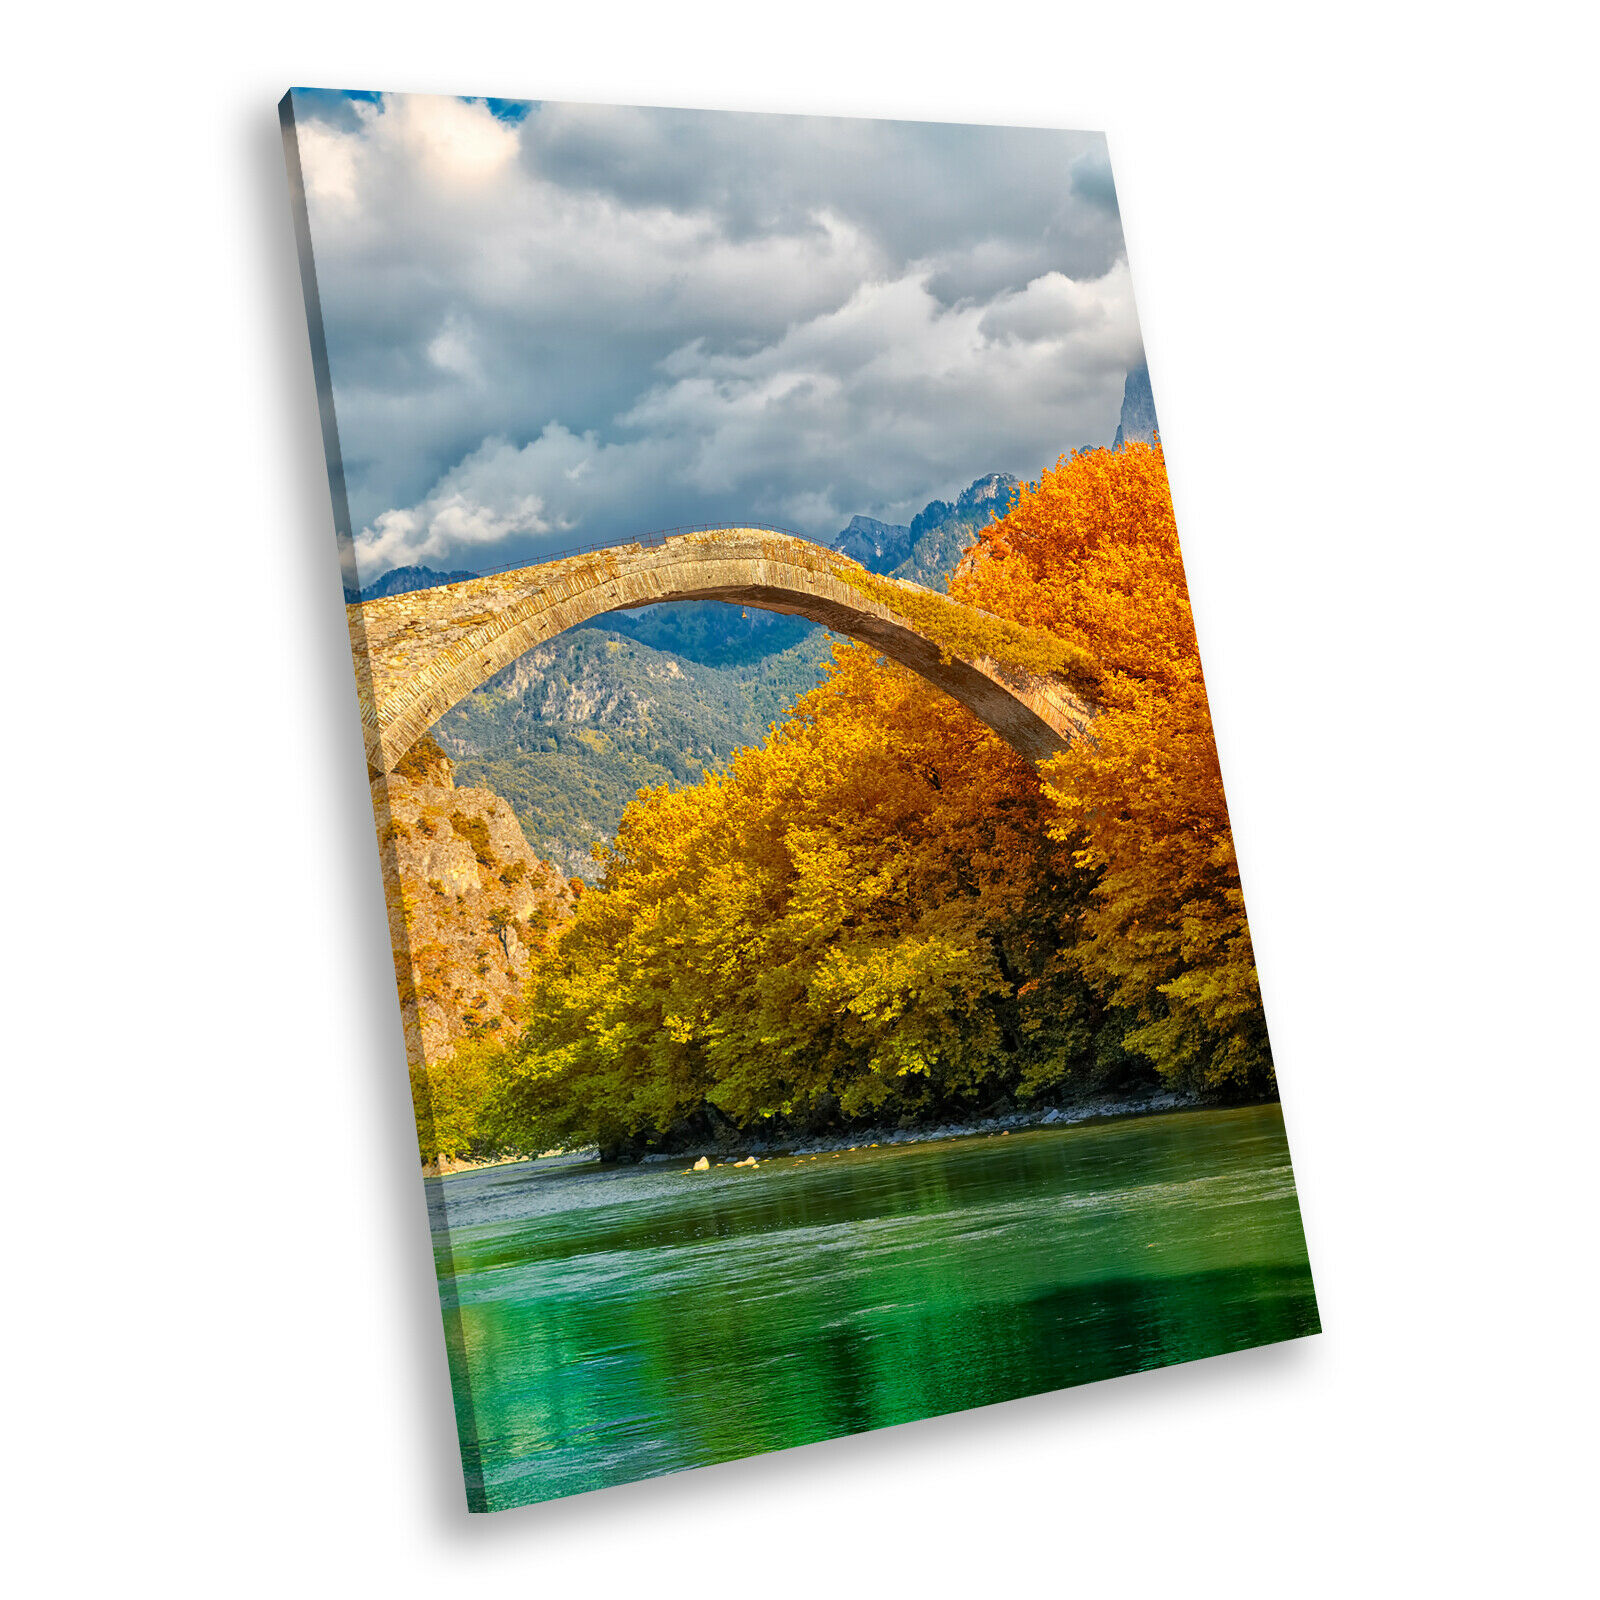 Orange Grün Autumn Bridge Portrait Scenic Canvas Wall Art Large Picture Prints